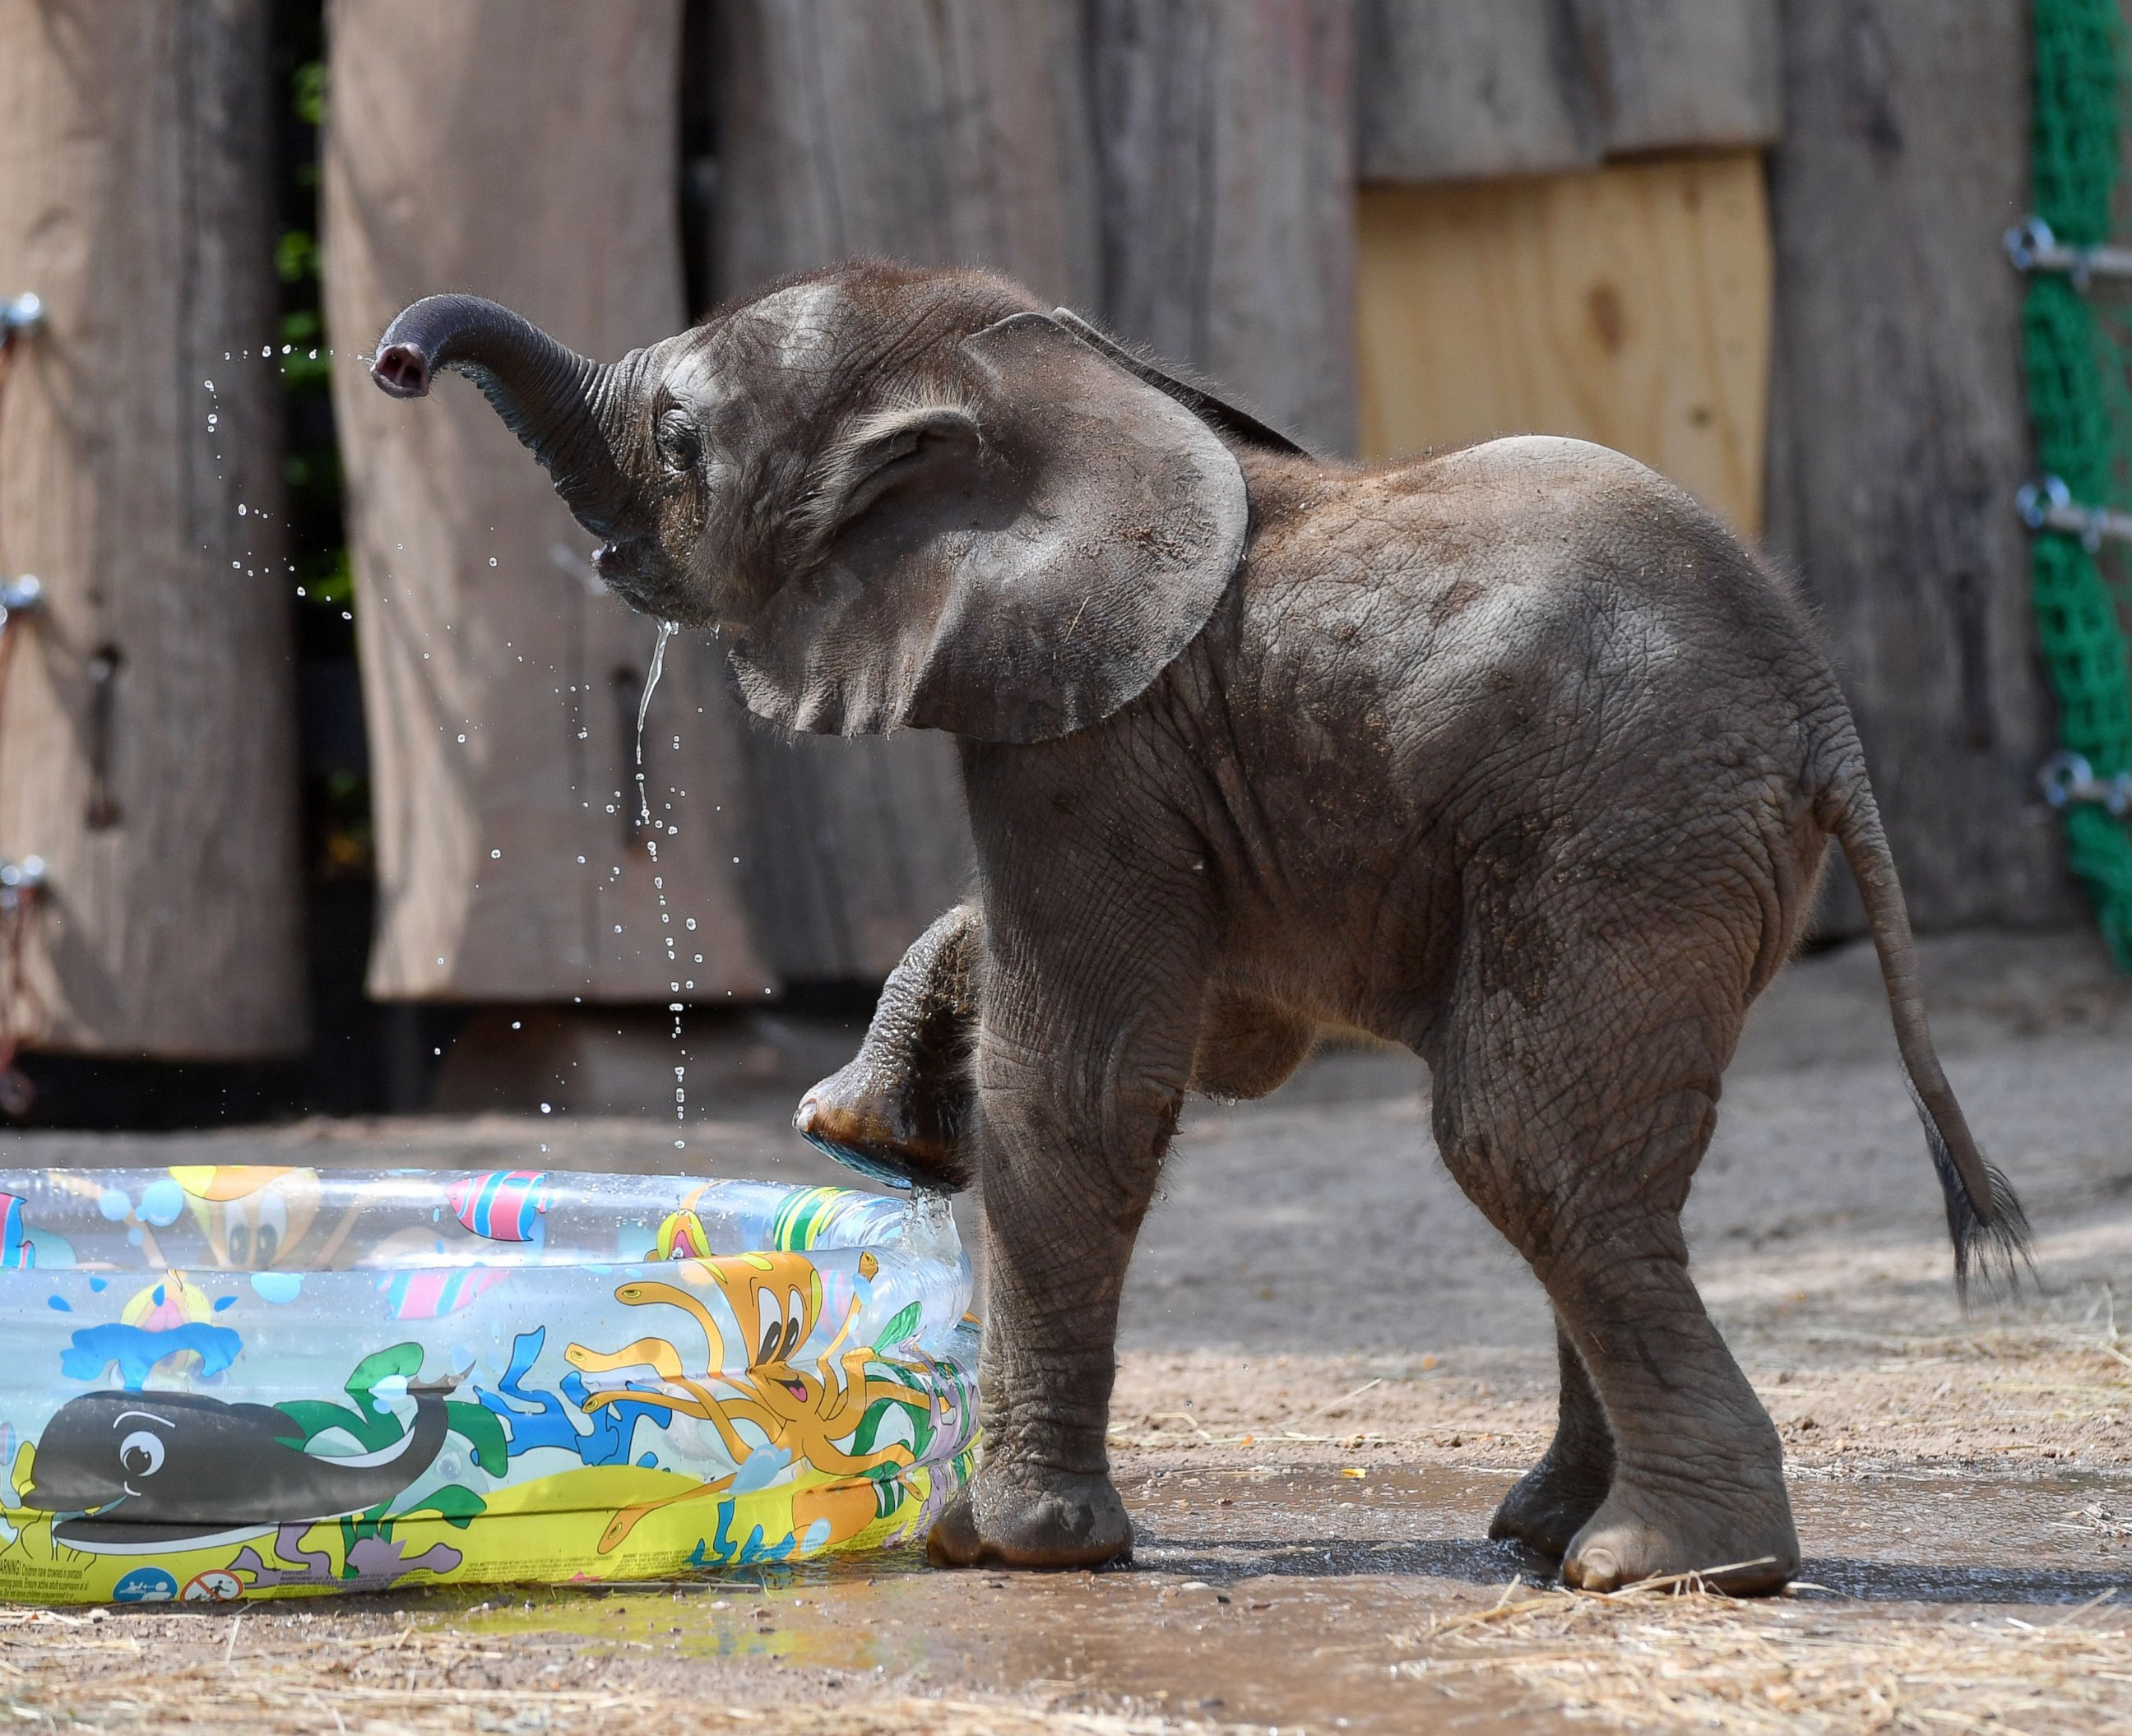 Baby Elephant Plays With Water